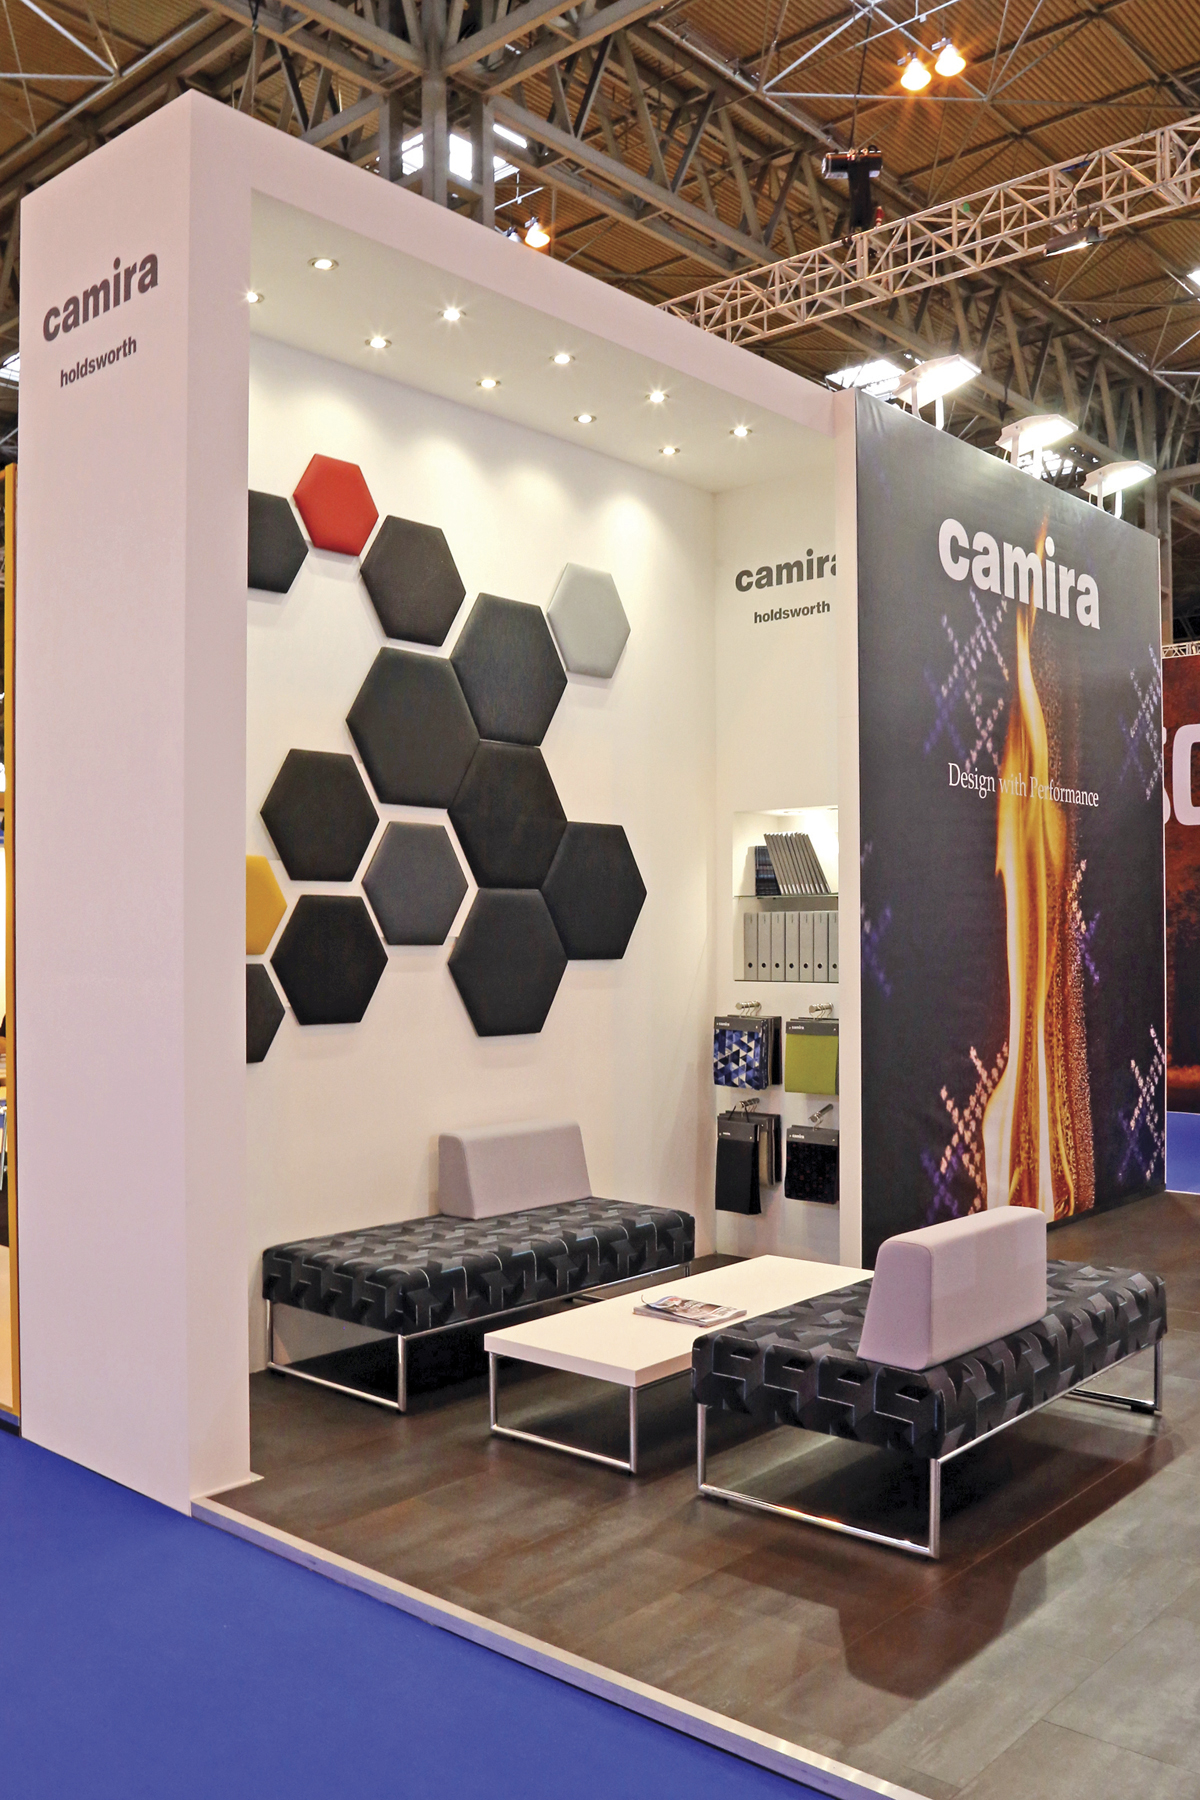 Camira's eye catching stand.